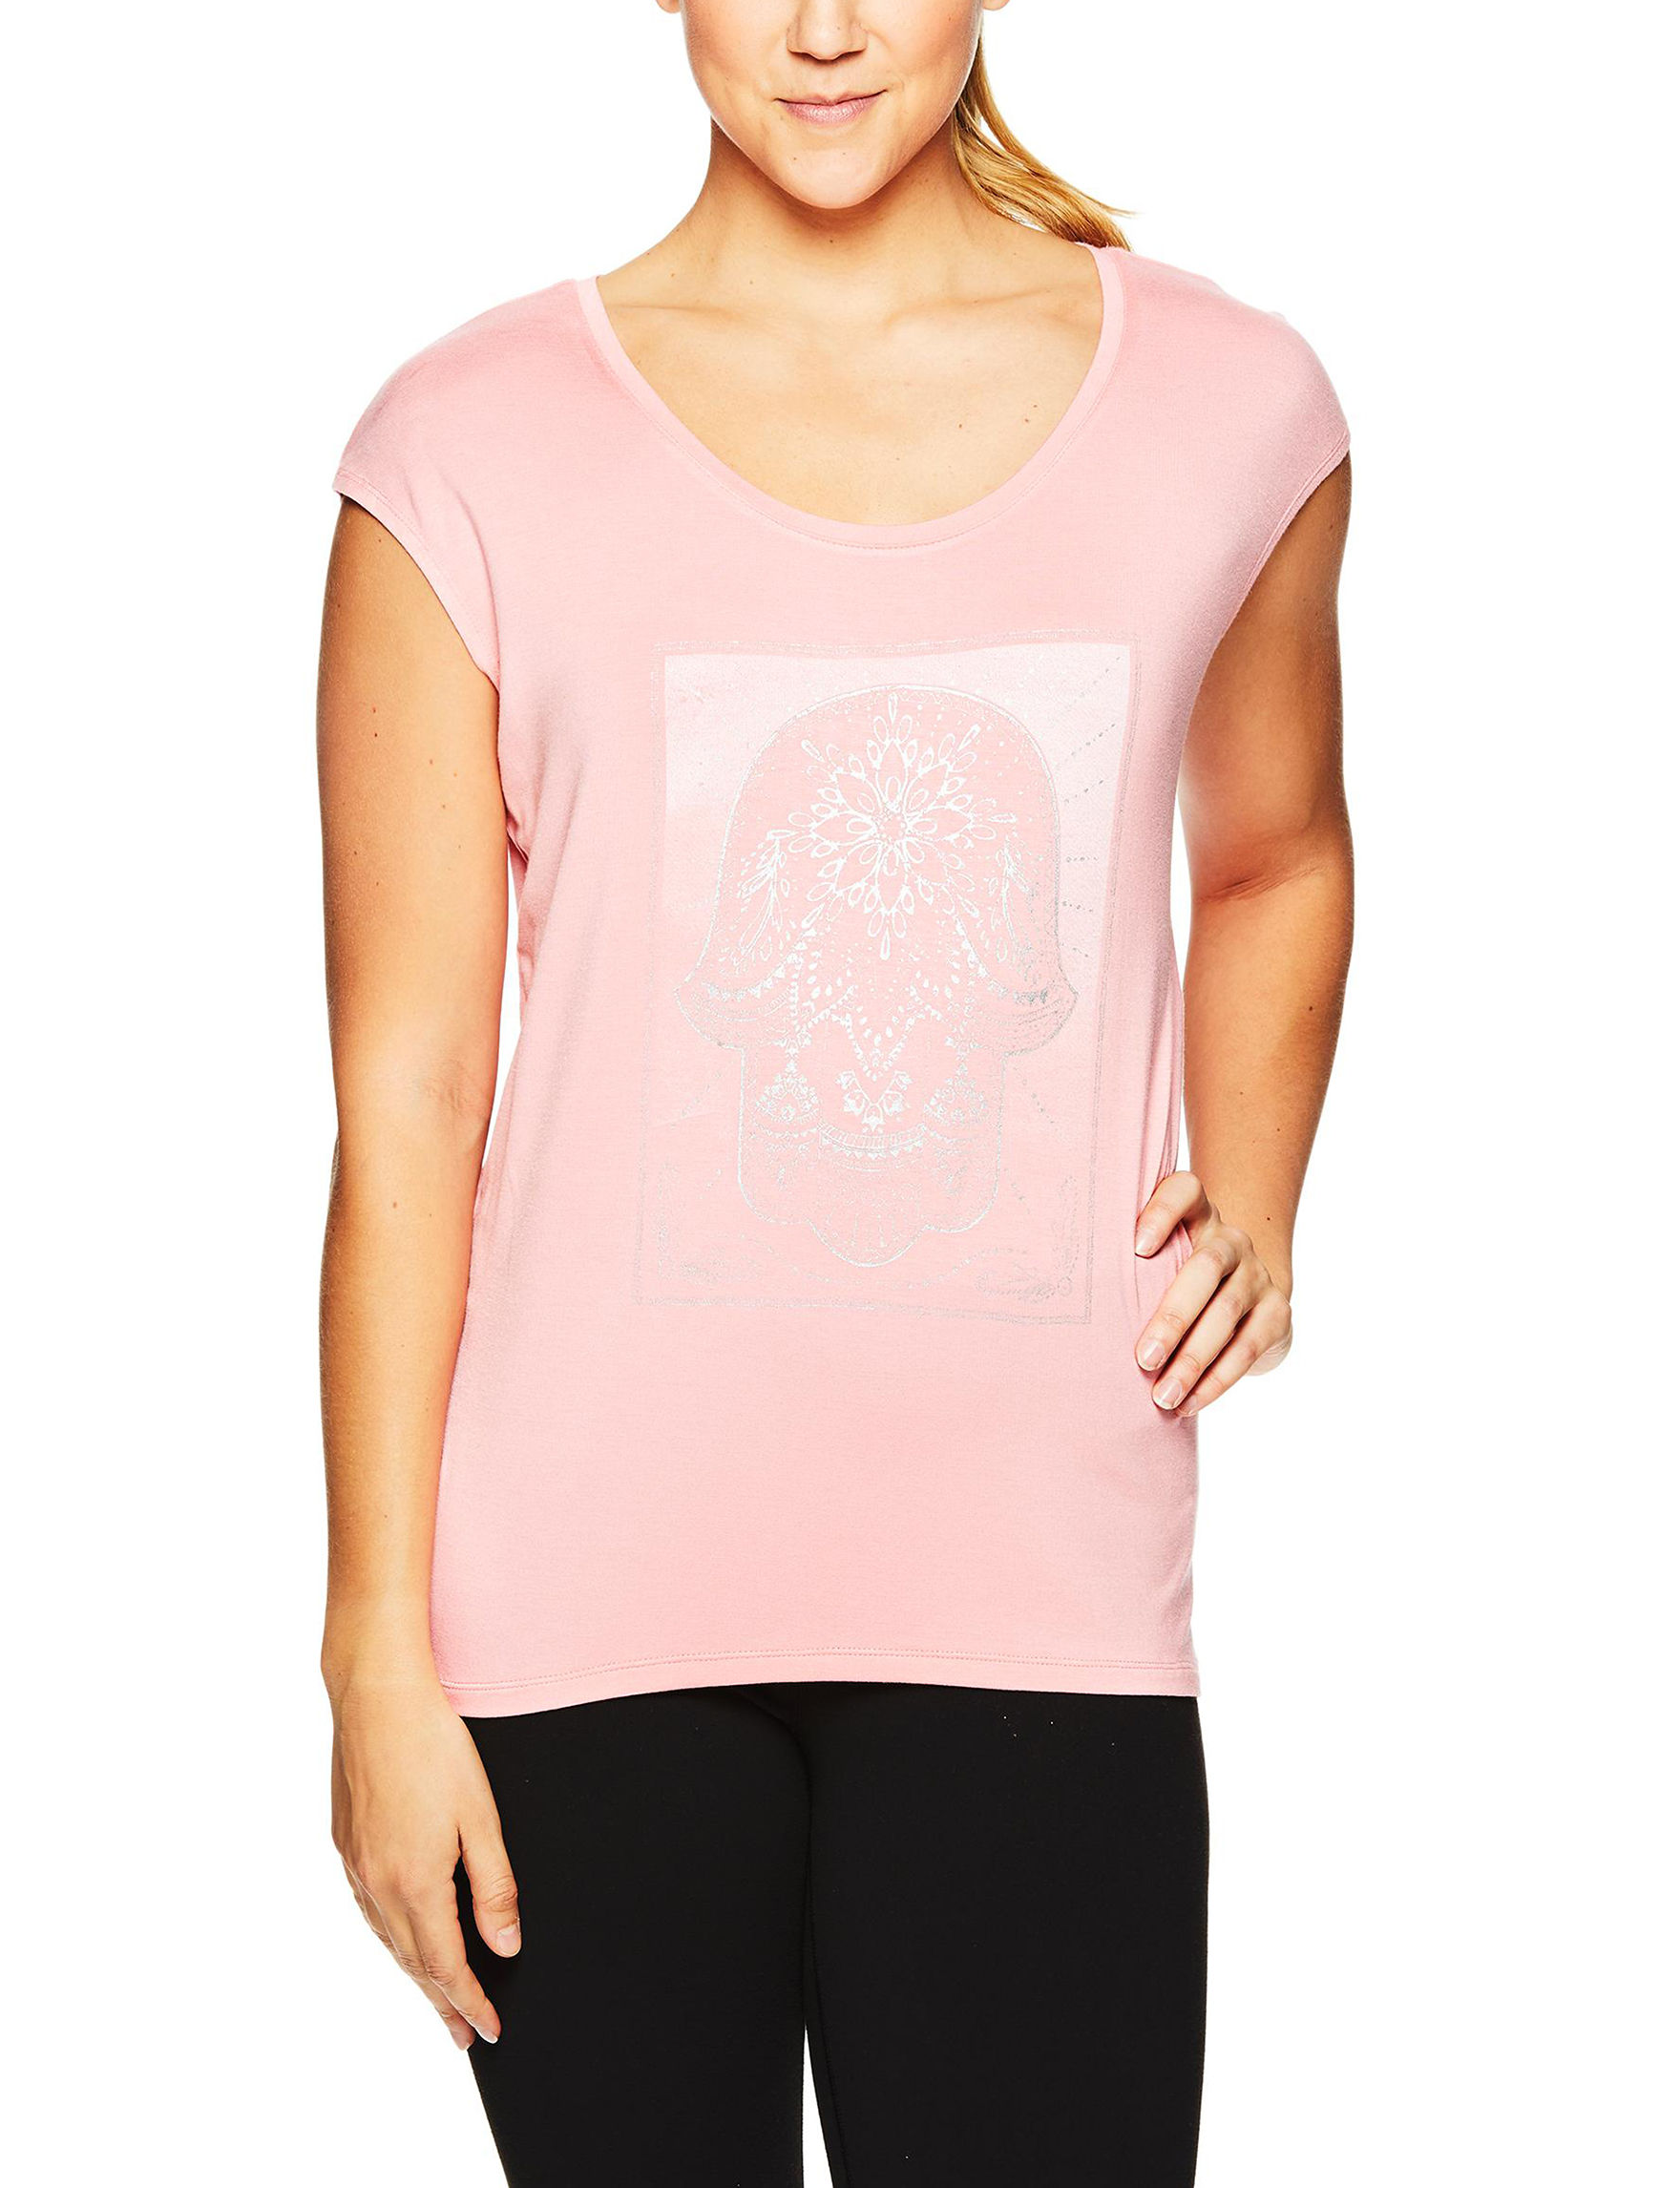 Gaiam Pink Tees & Tanks